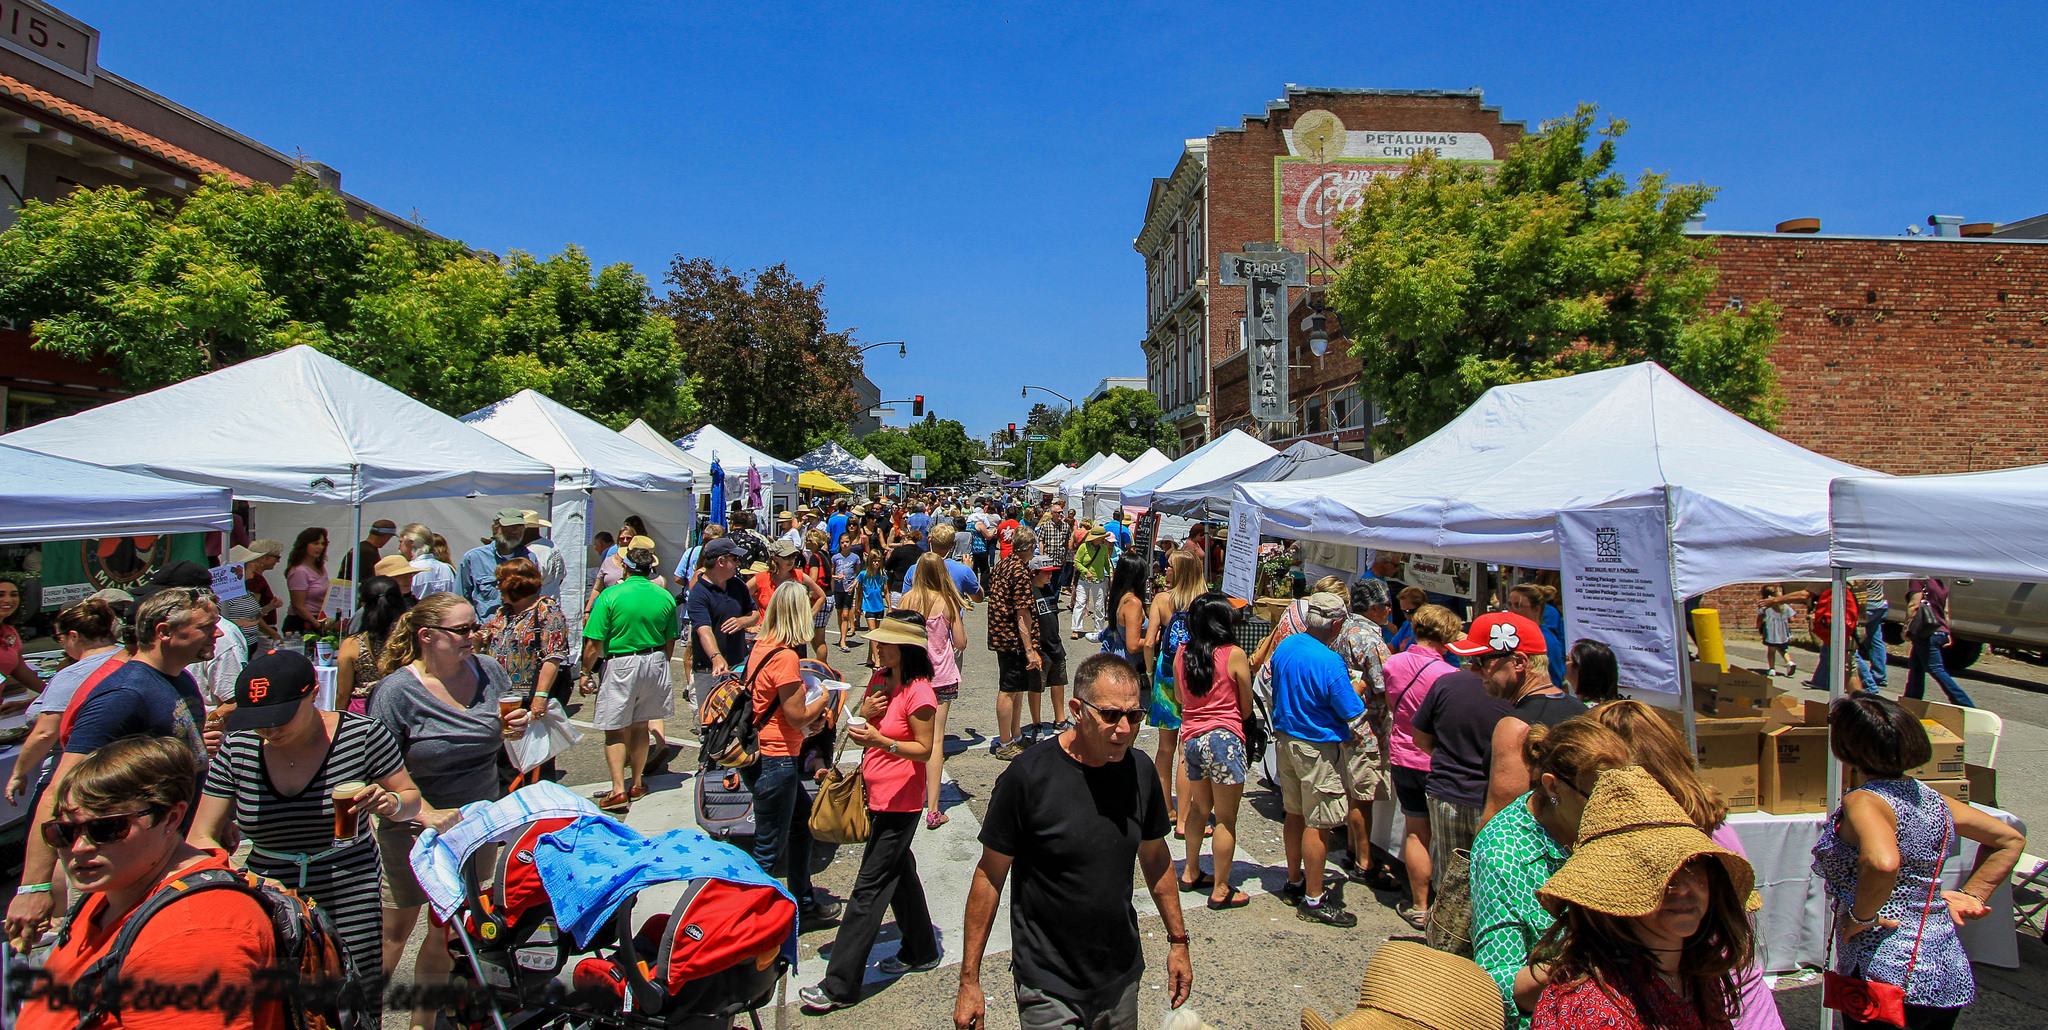 What's Going On This Week In #Petaluma? July 11th through July 17th